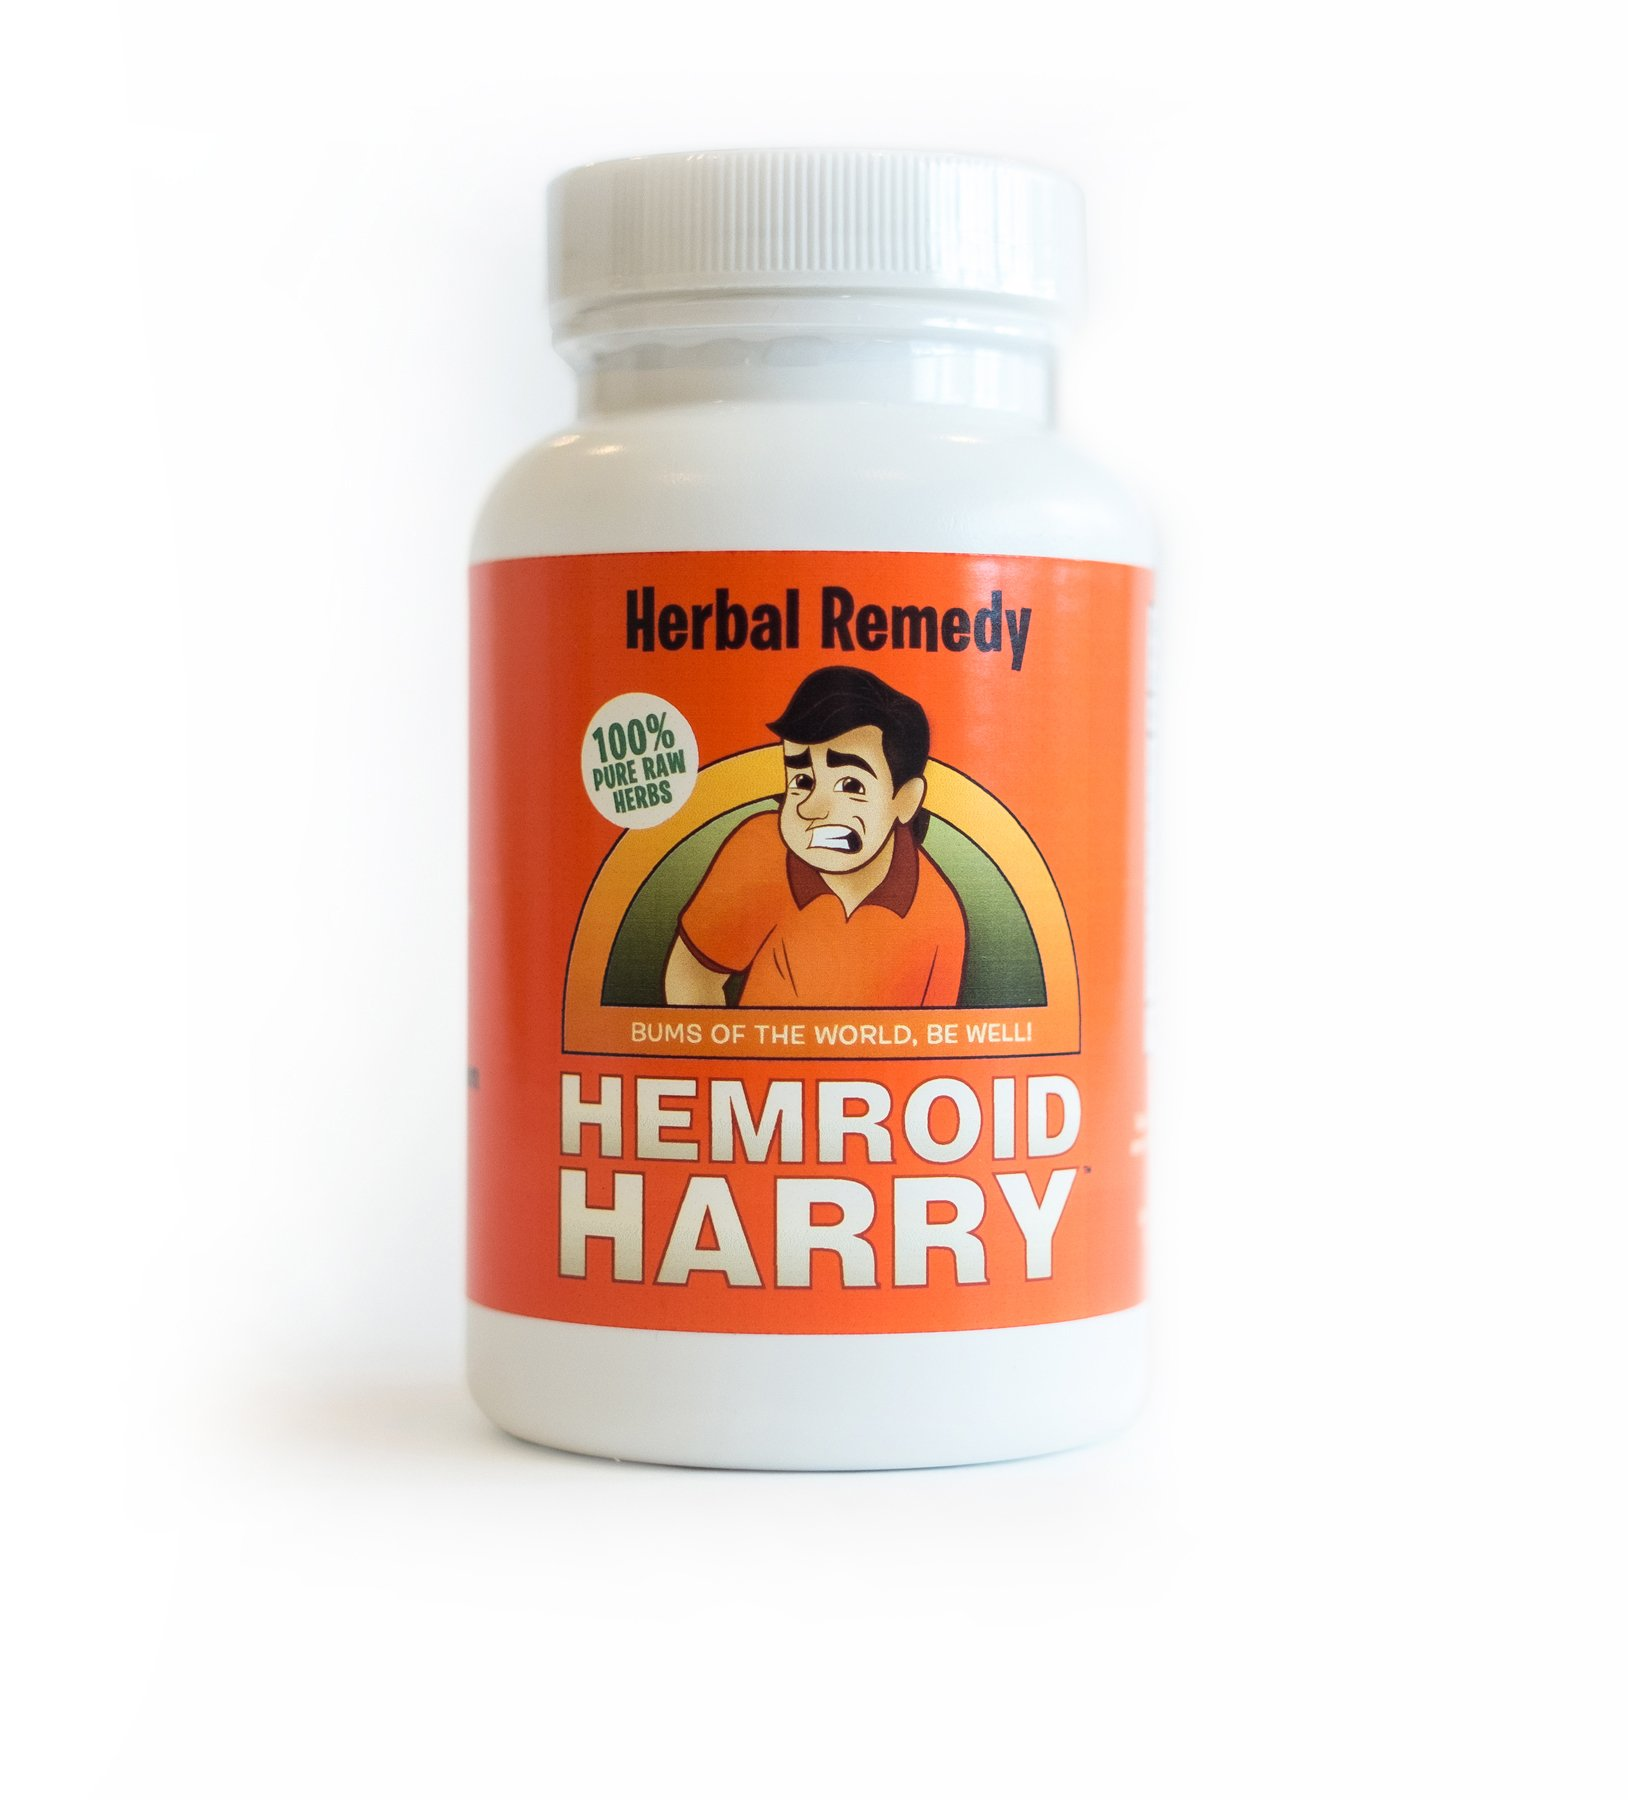 Hemroid Harry's Herbal Remedy, 30 Day (240 Count) - Natural Hemorrhoid Treatment, Itch Pain Relief, Pills, Medicine, Medication, Care by Hemroid Harry's Herbal Remedy